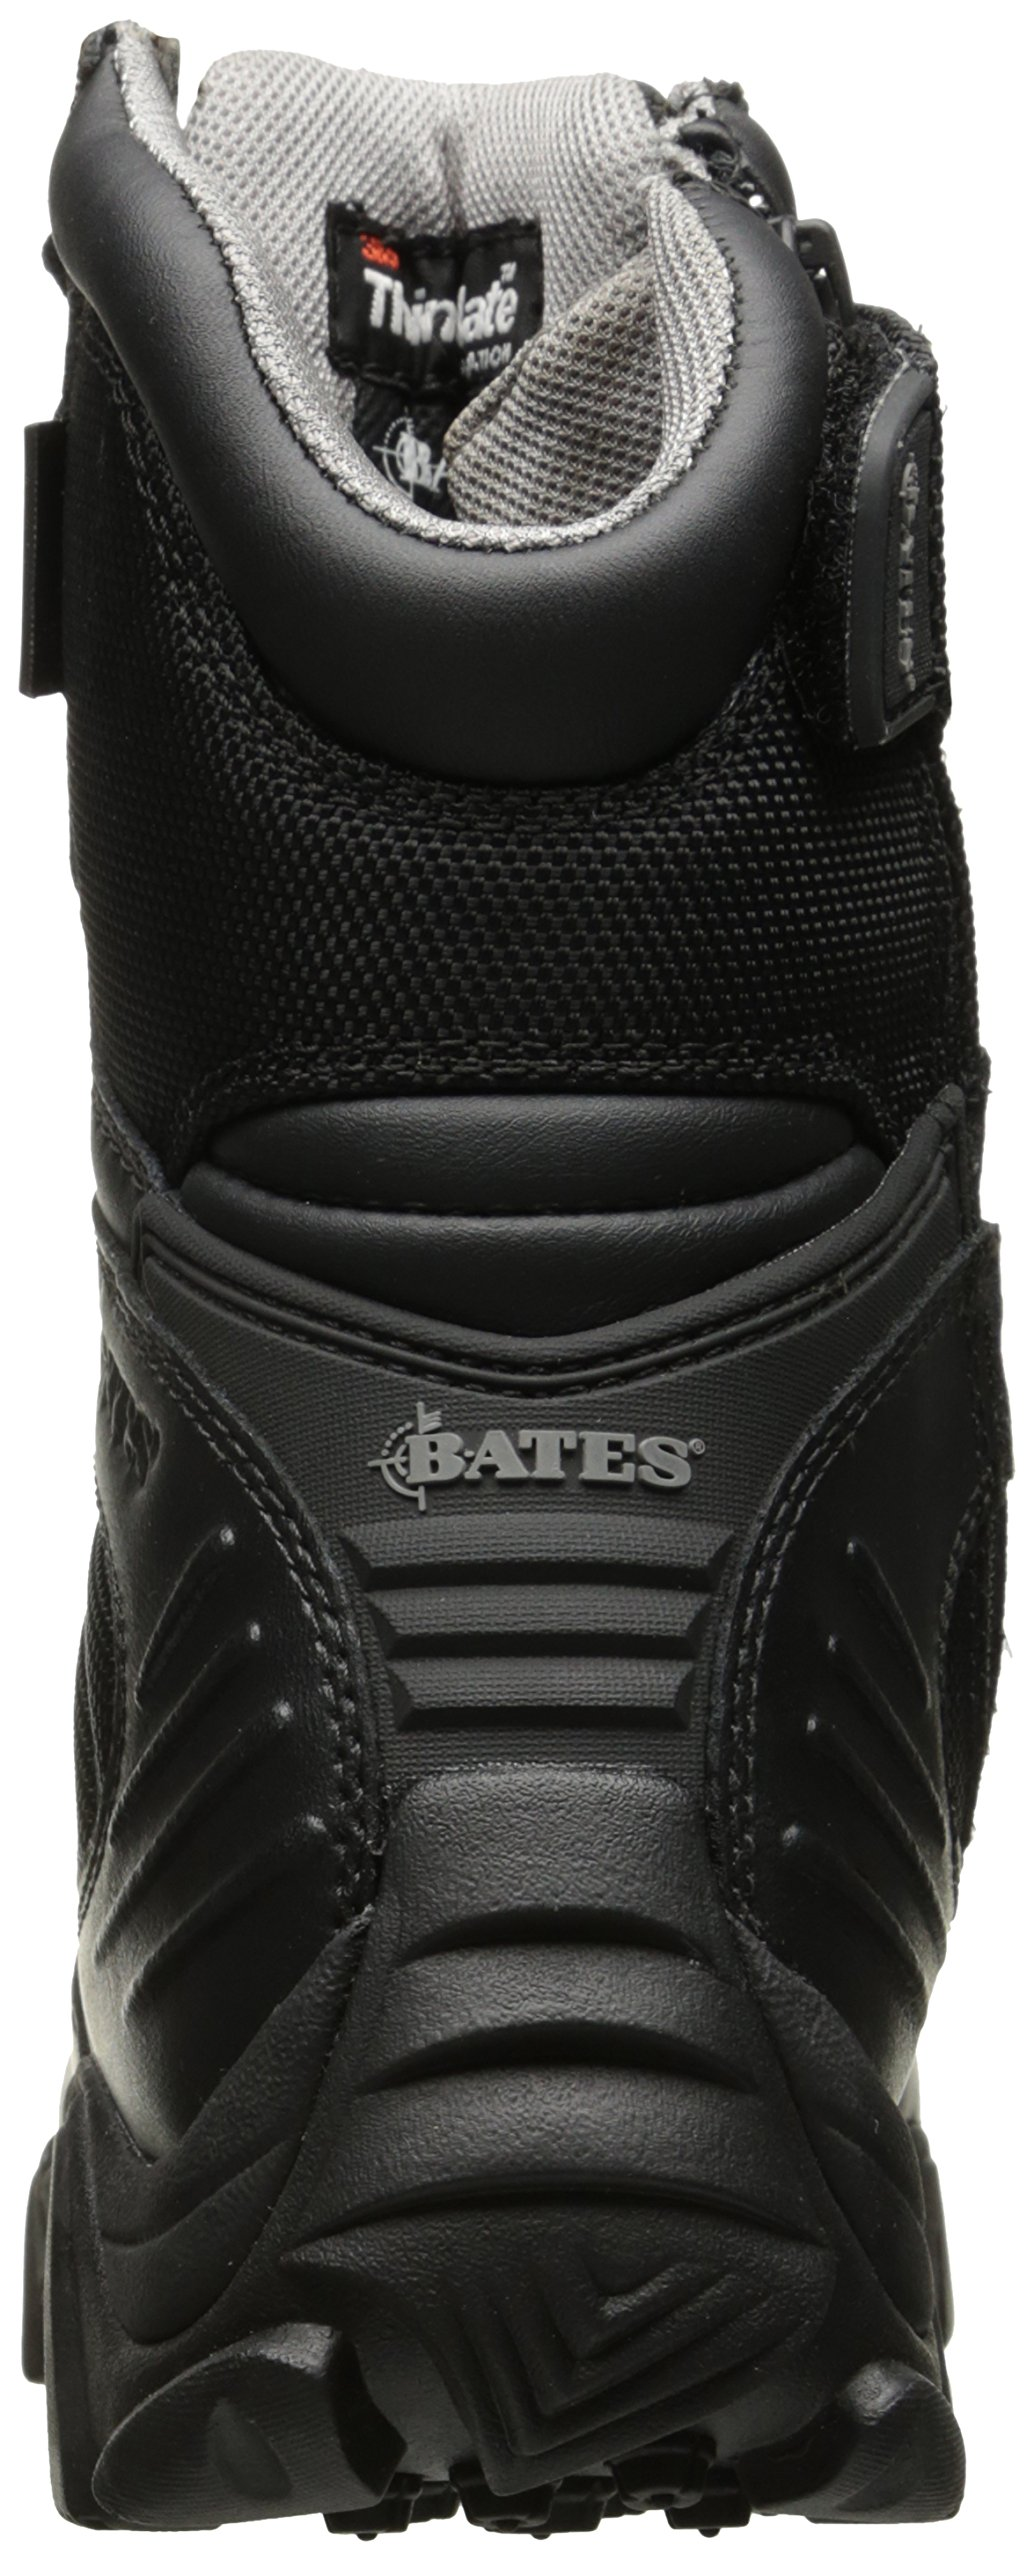 Bates Women's GX-8 Gore-Tex Insulated Side Zip Fire and Safety Shoe, Black, 9 M US by Bates (Image #2)